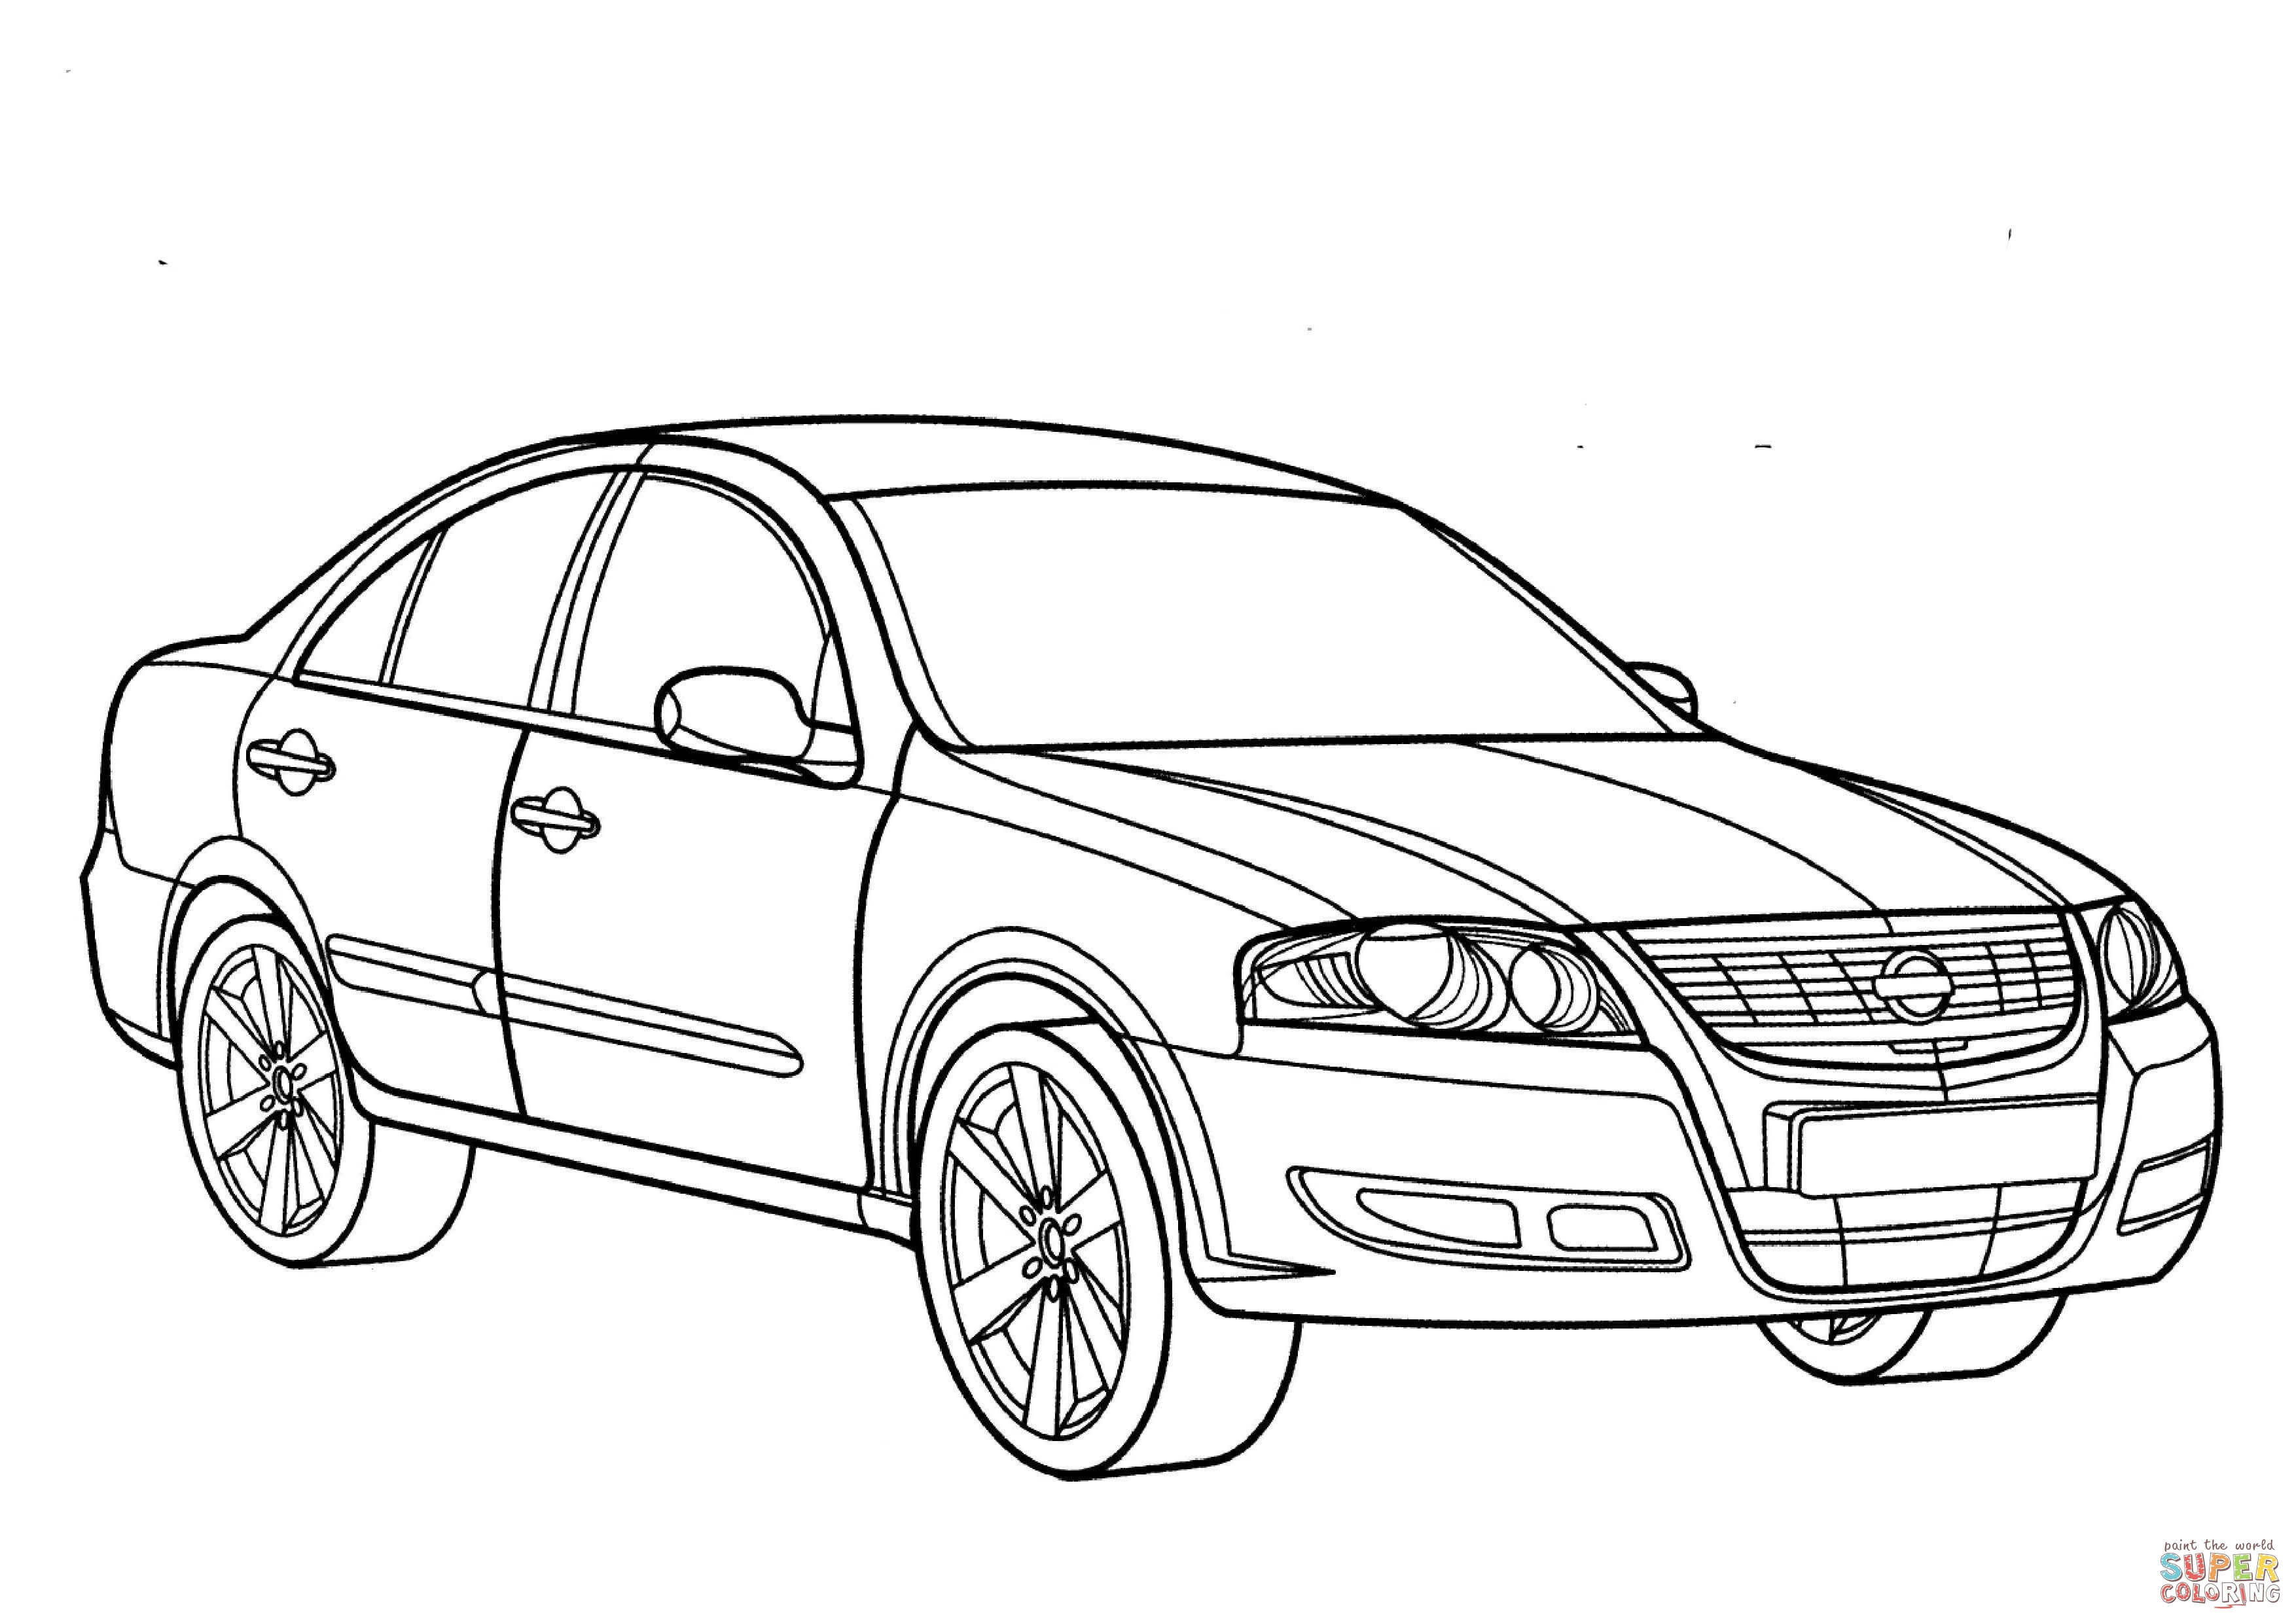 3508x2480 Nissan Almera Coloring Page Free Printable Coloring Pages